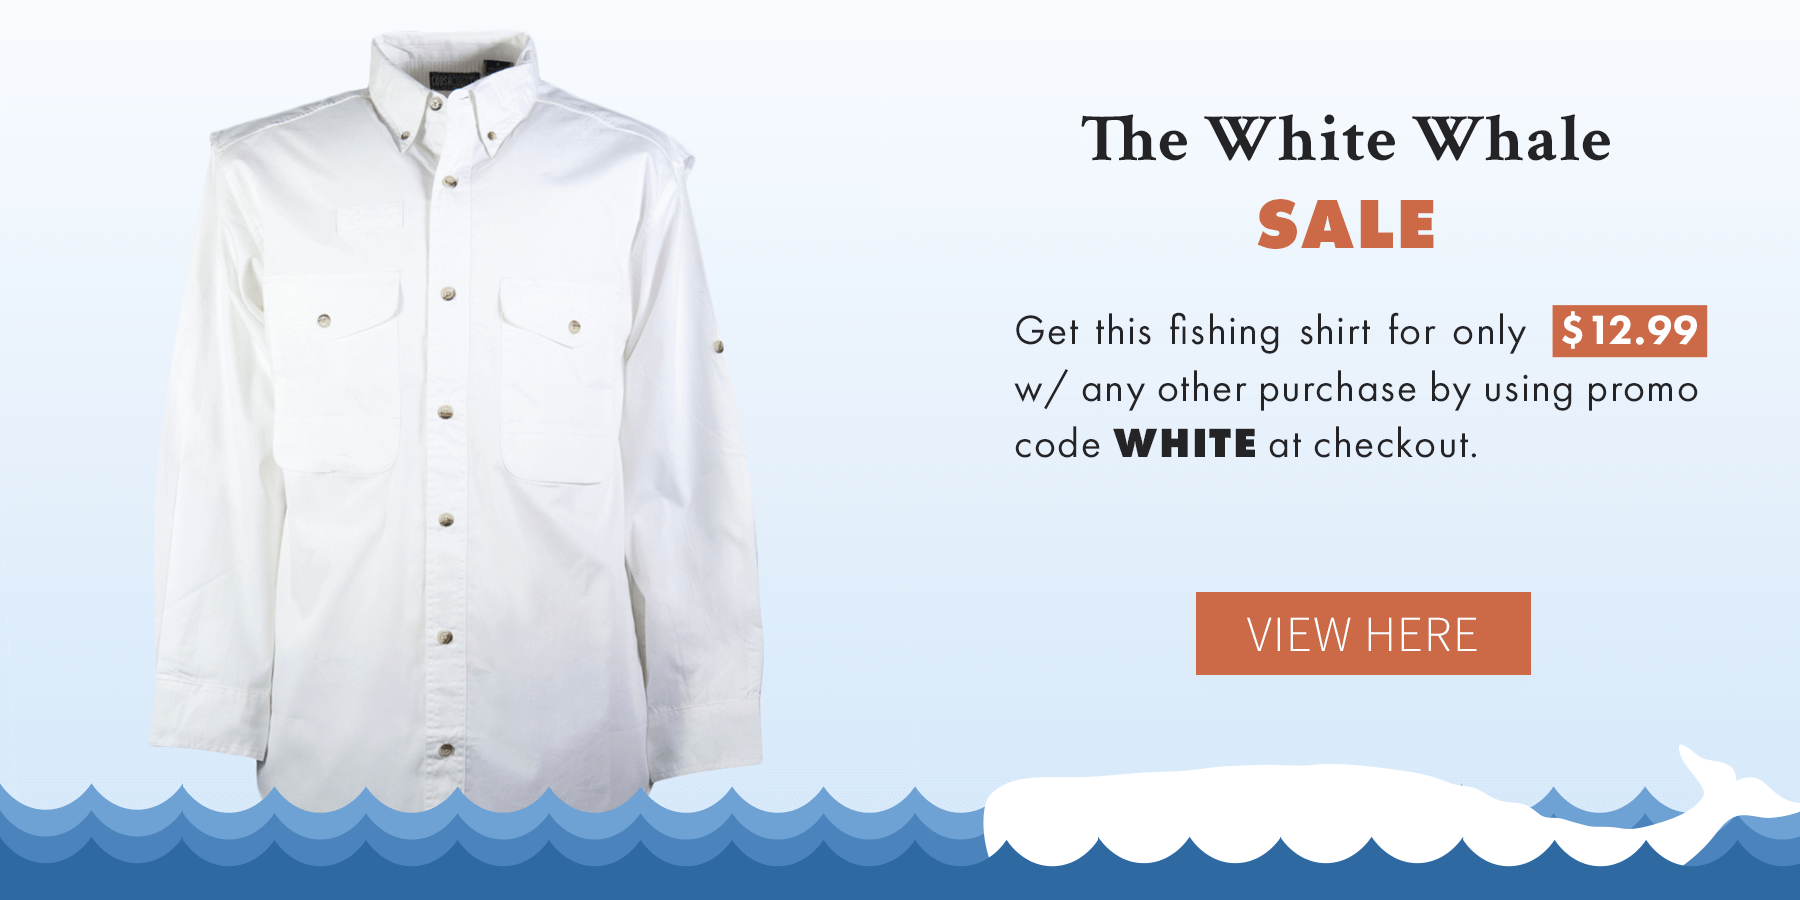 White Whale Fishing Shirt Sale